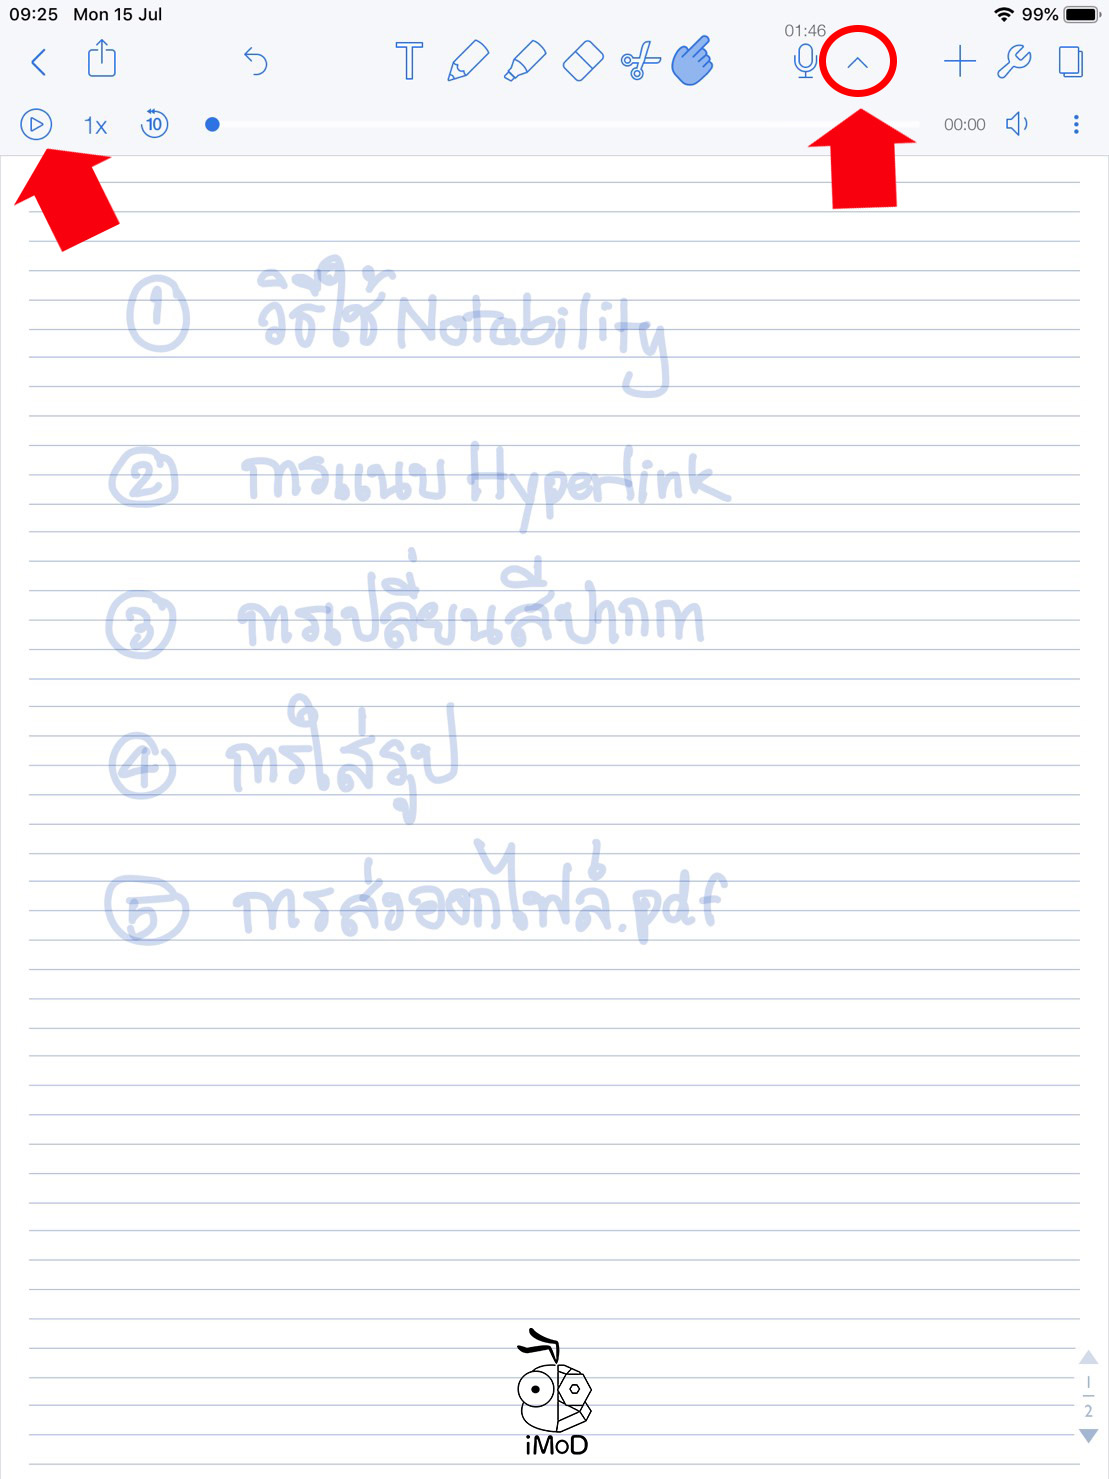 Record Notability 2